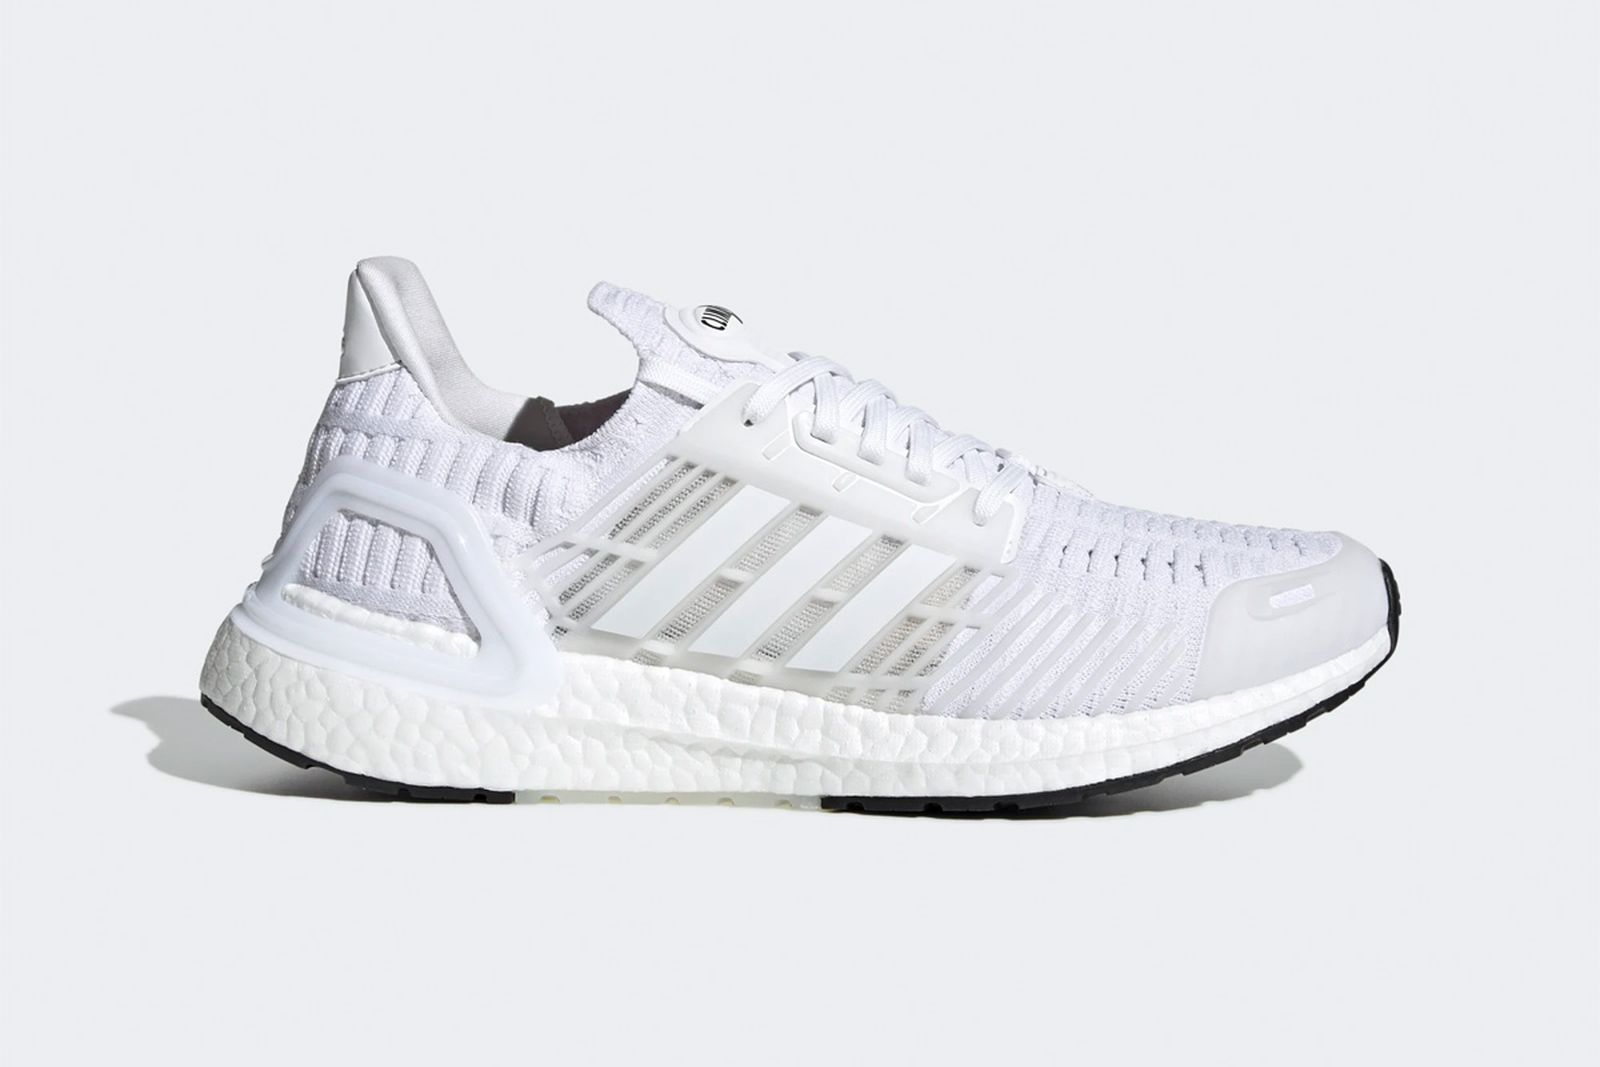 adidas-ultraboost-clima-cool-release-date-price-01